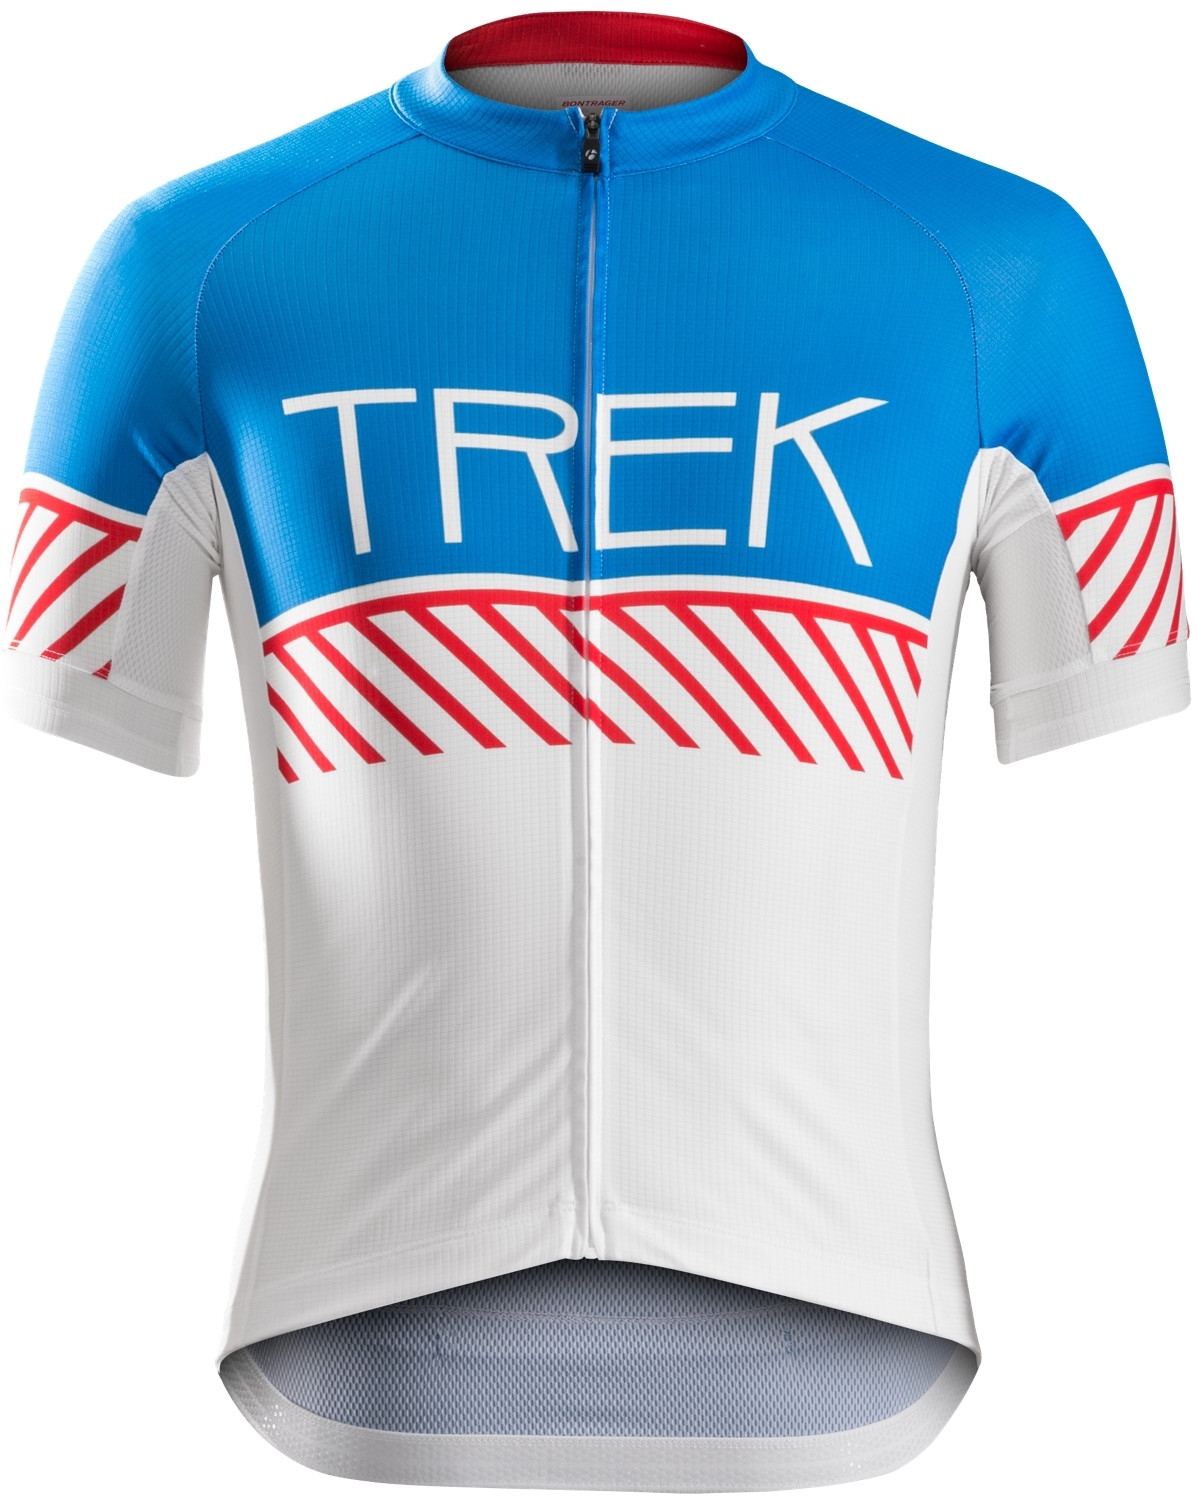 Bontrager Specter Cycling Jersey - Mens - Jerseys - Clothing - Shop ... 14fb559e5